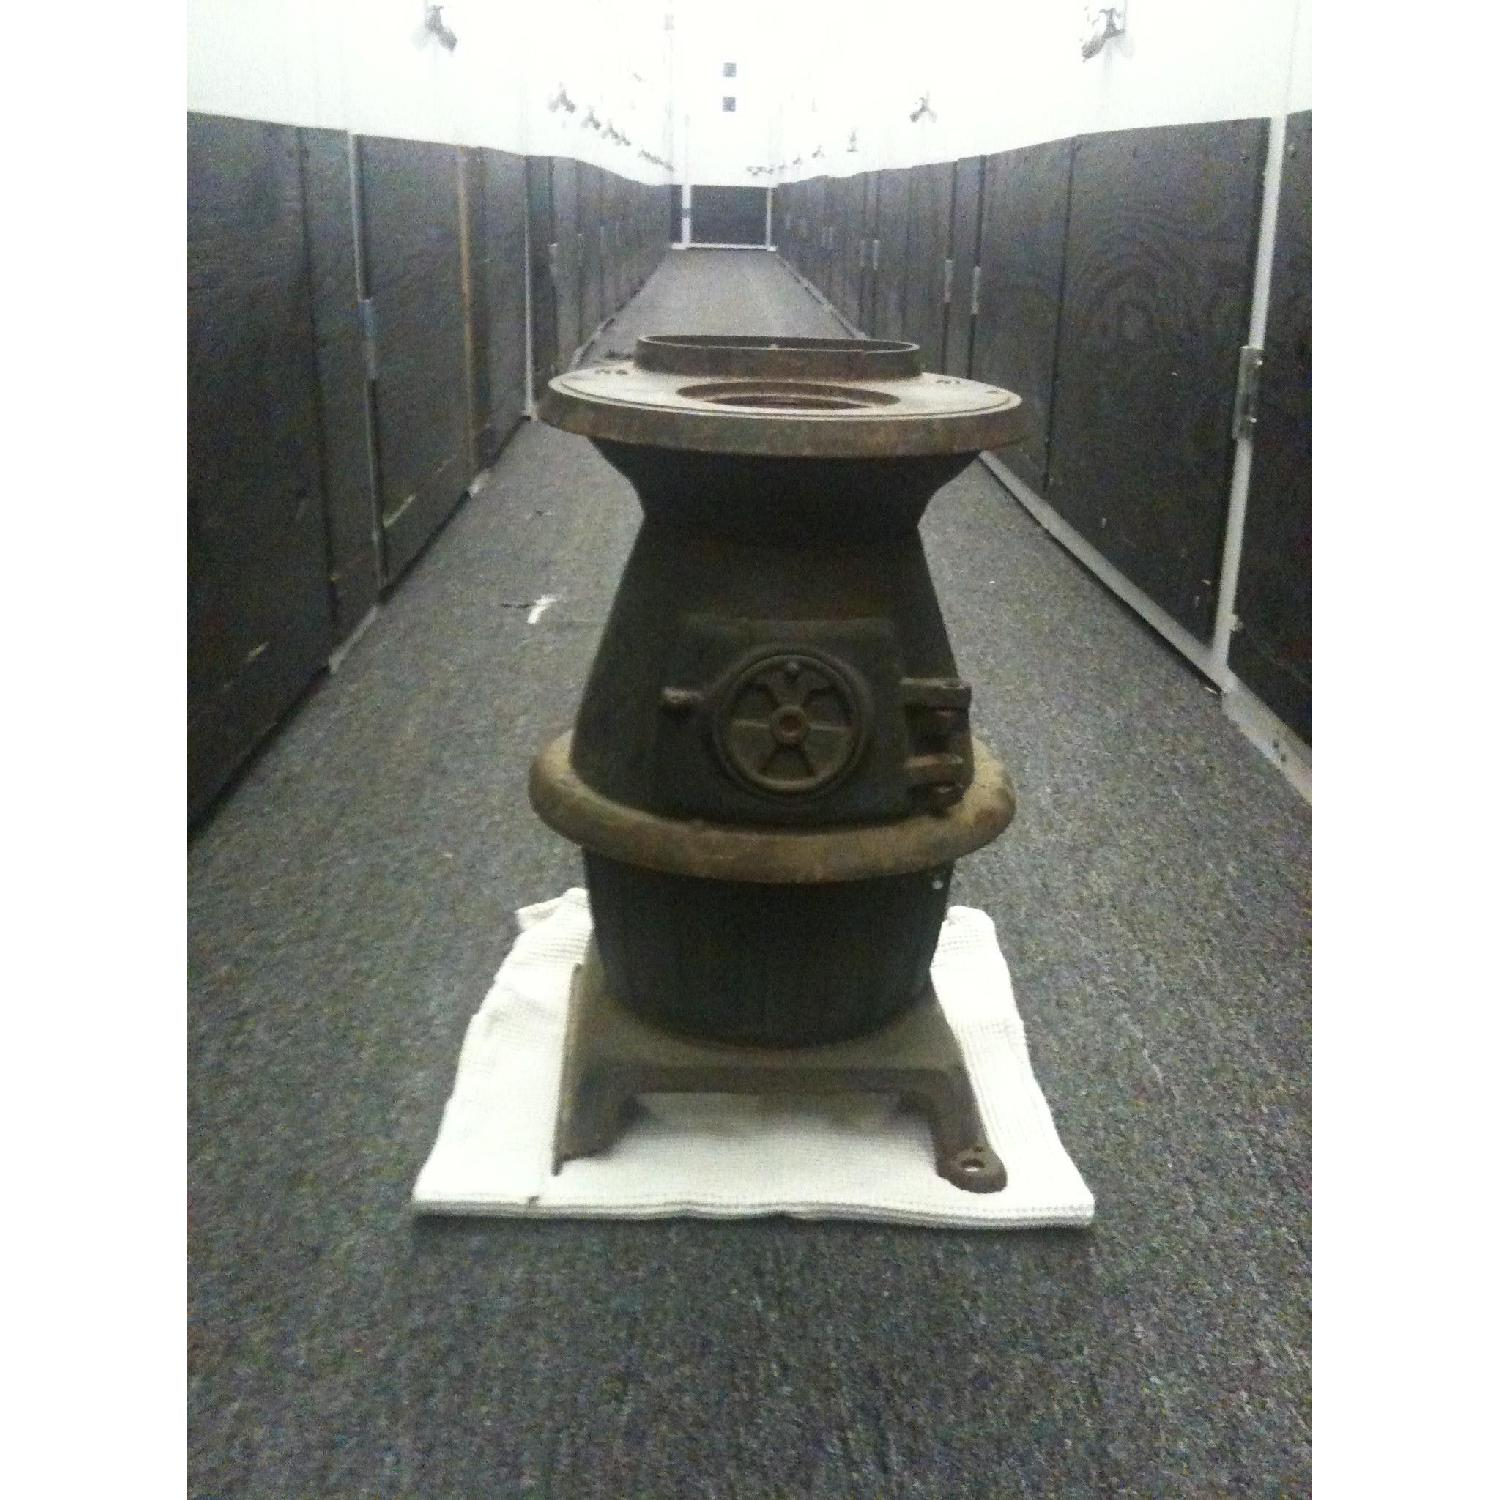 Rustic Vintage Potbelly Stove - image-1